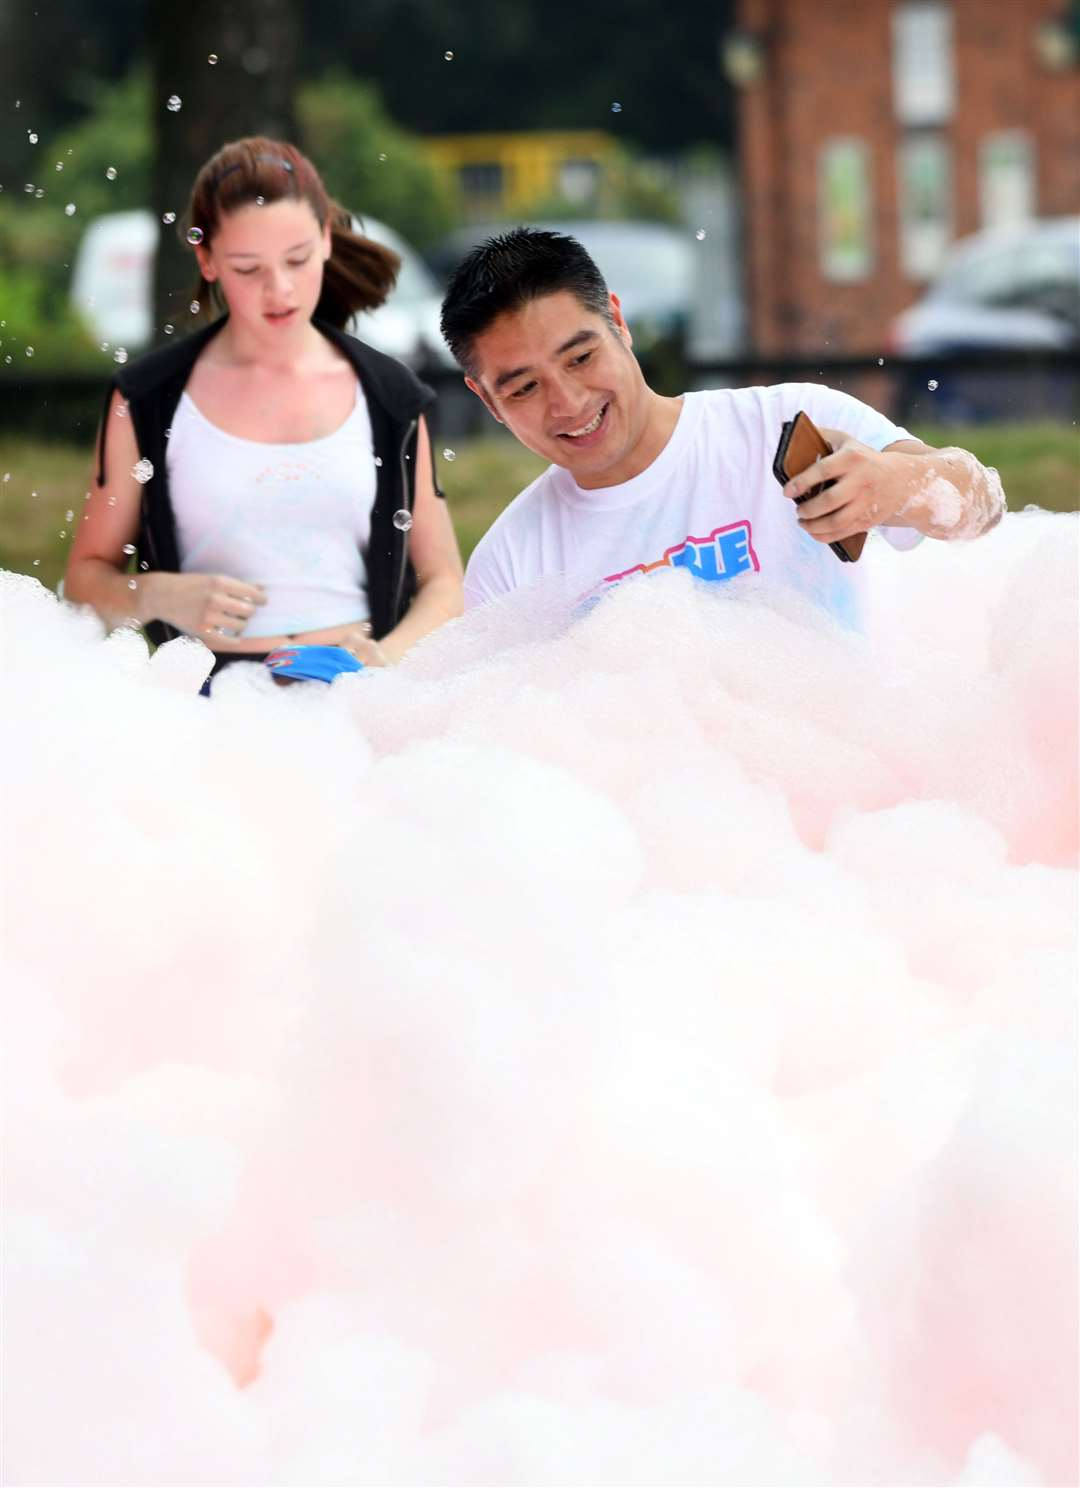 Bubble Rush at The Walks in Kings Lynn. MLNF-21AF09590